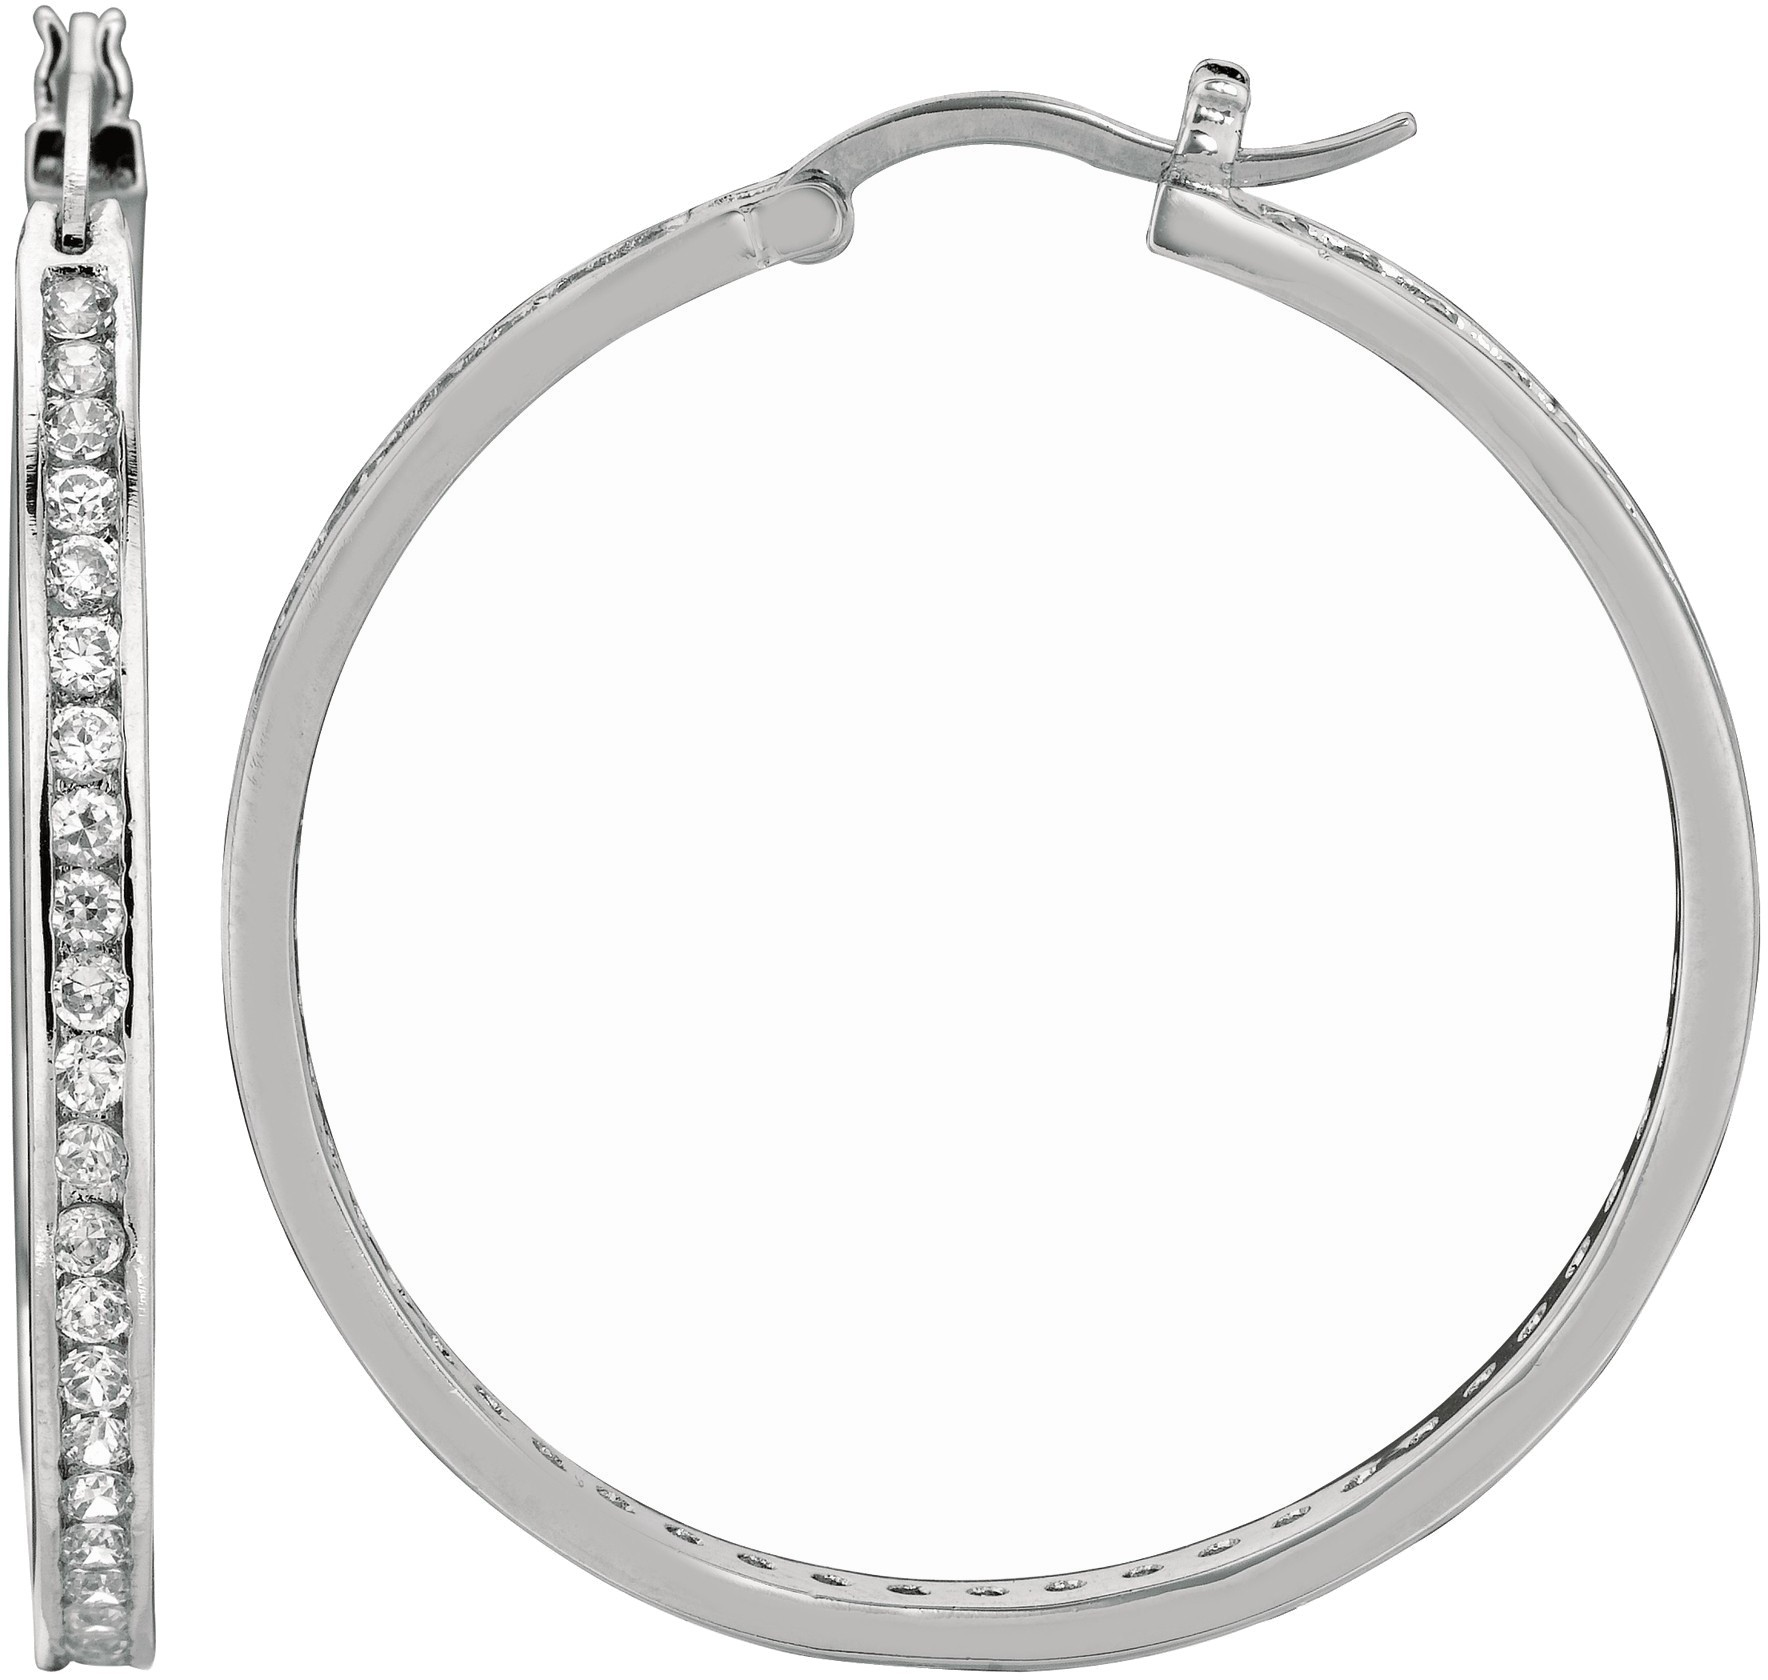 "Silver Rhodium Plated Shiny 3.0x36mm (0.12""x1.42"") Clear Cubic Zirconia (CZ) Hoop Earrings"